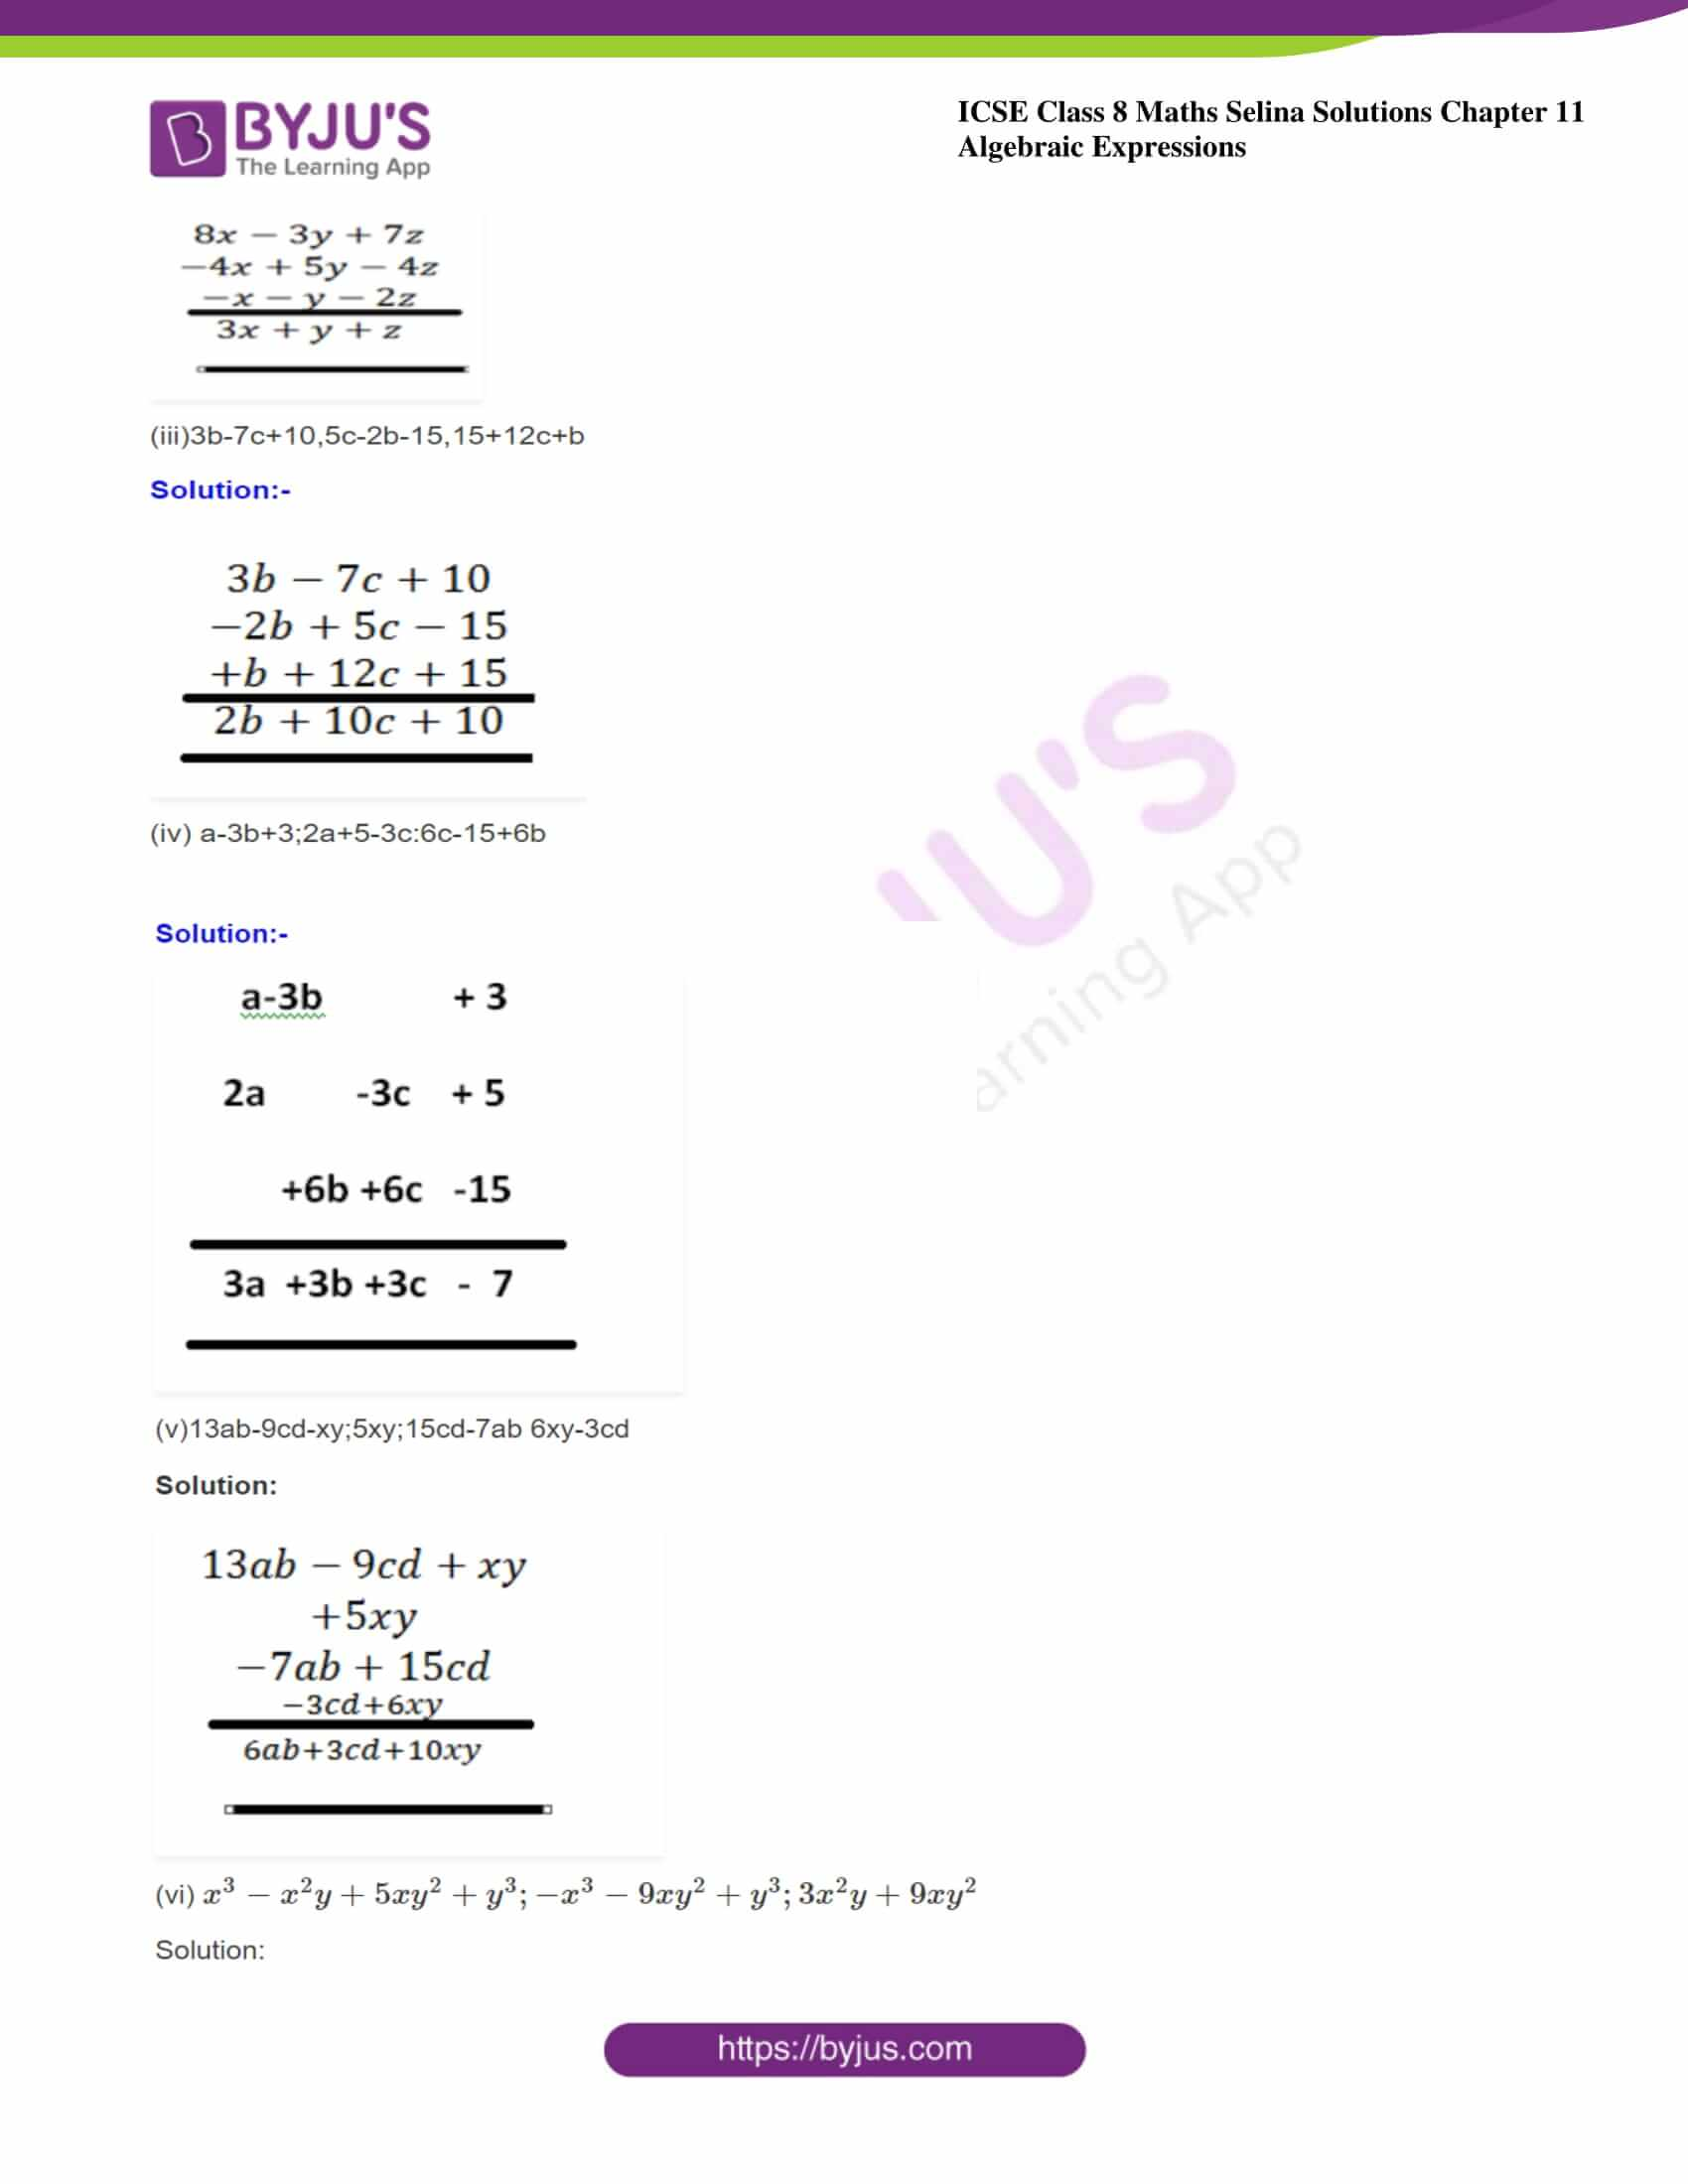 icse class 8 maths may3 selina solutions chapter 11 algebraic expressions 06